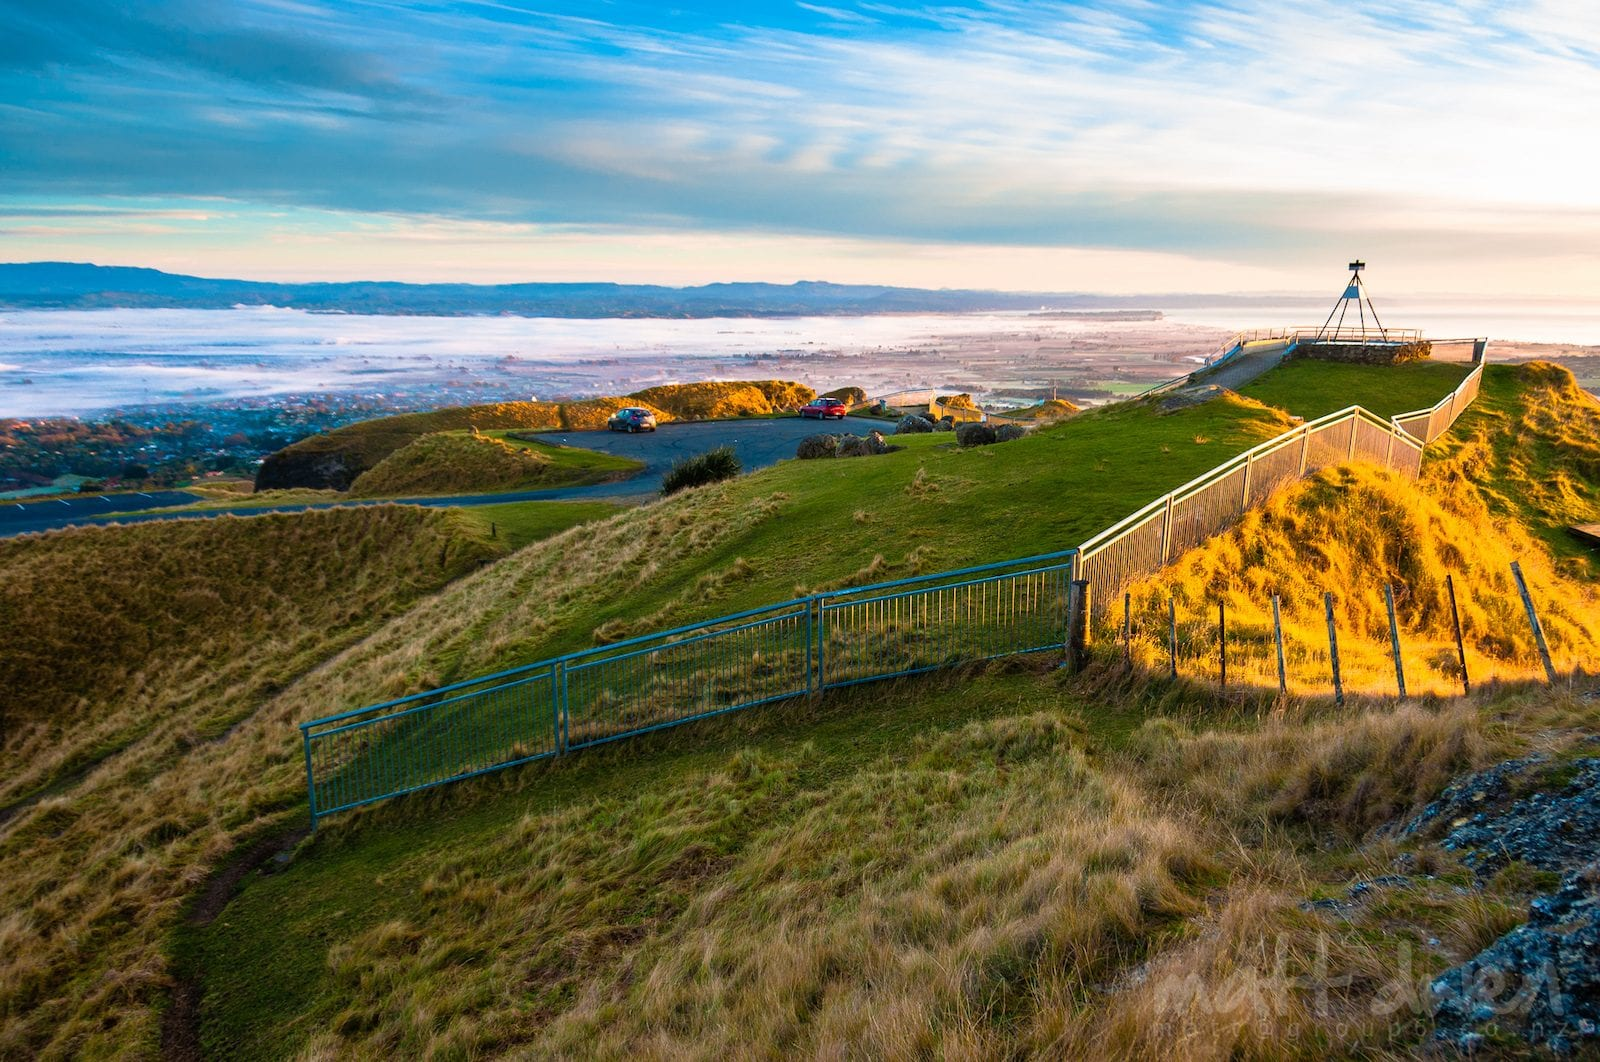 Sunrise at Te Mata Park, Hawke's Bay in New Zealand